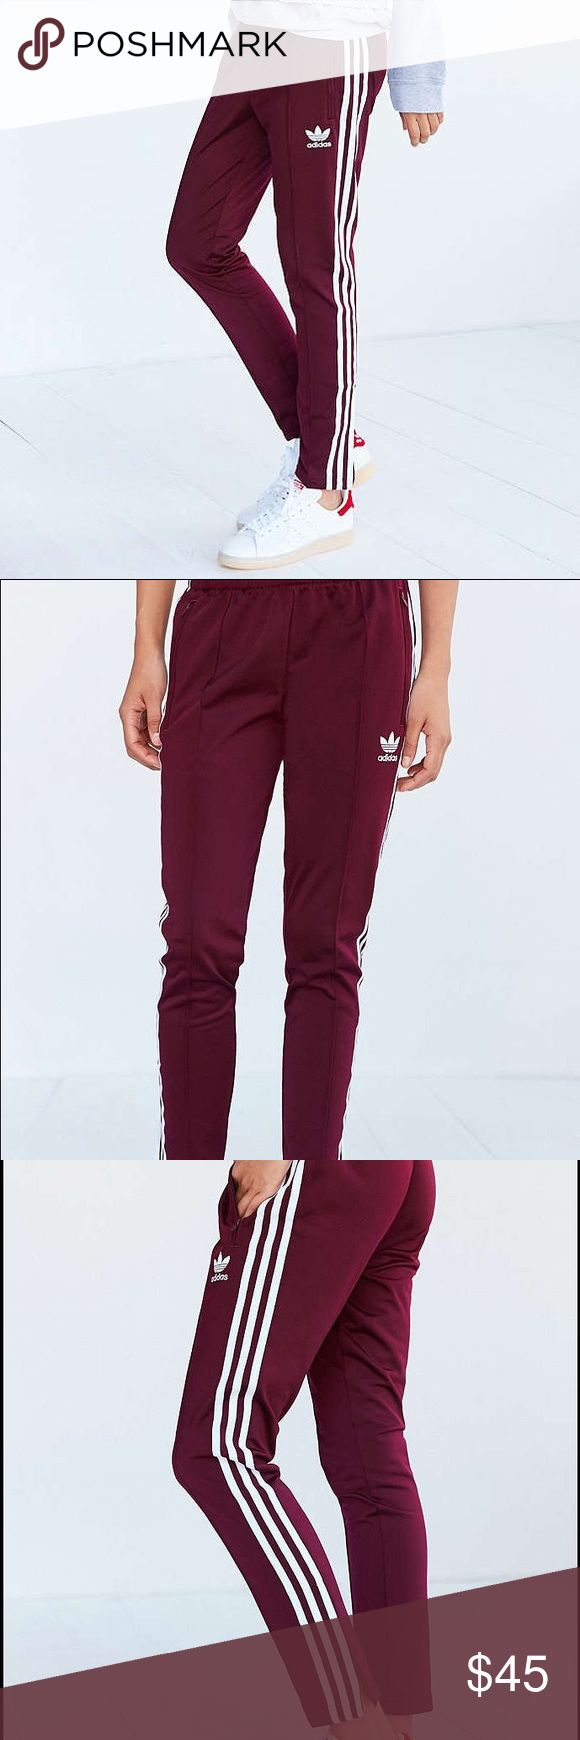 Adidas originals track pant Size S MSRP $60 adidas Original's slim-fit modern track pant in a fresh hue we love. In silky tricot fabric with a mid-rise construction that tapers in at the cropped zip ankle, topped with an adjustable stretch-banded waist with hidden drawstring closure tucked inside. Complete with side zip pockets and center seams for an elevated touch.  Content + Care - Polyester - Machine wash Adidas Pants Track Pants & Joggers